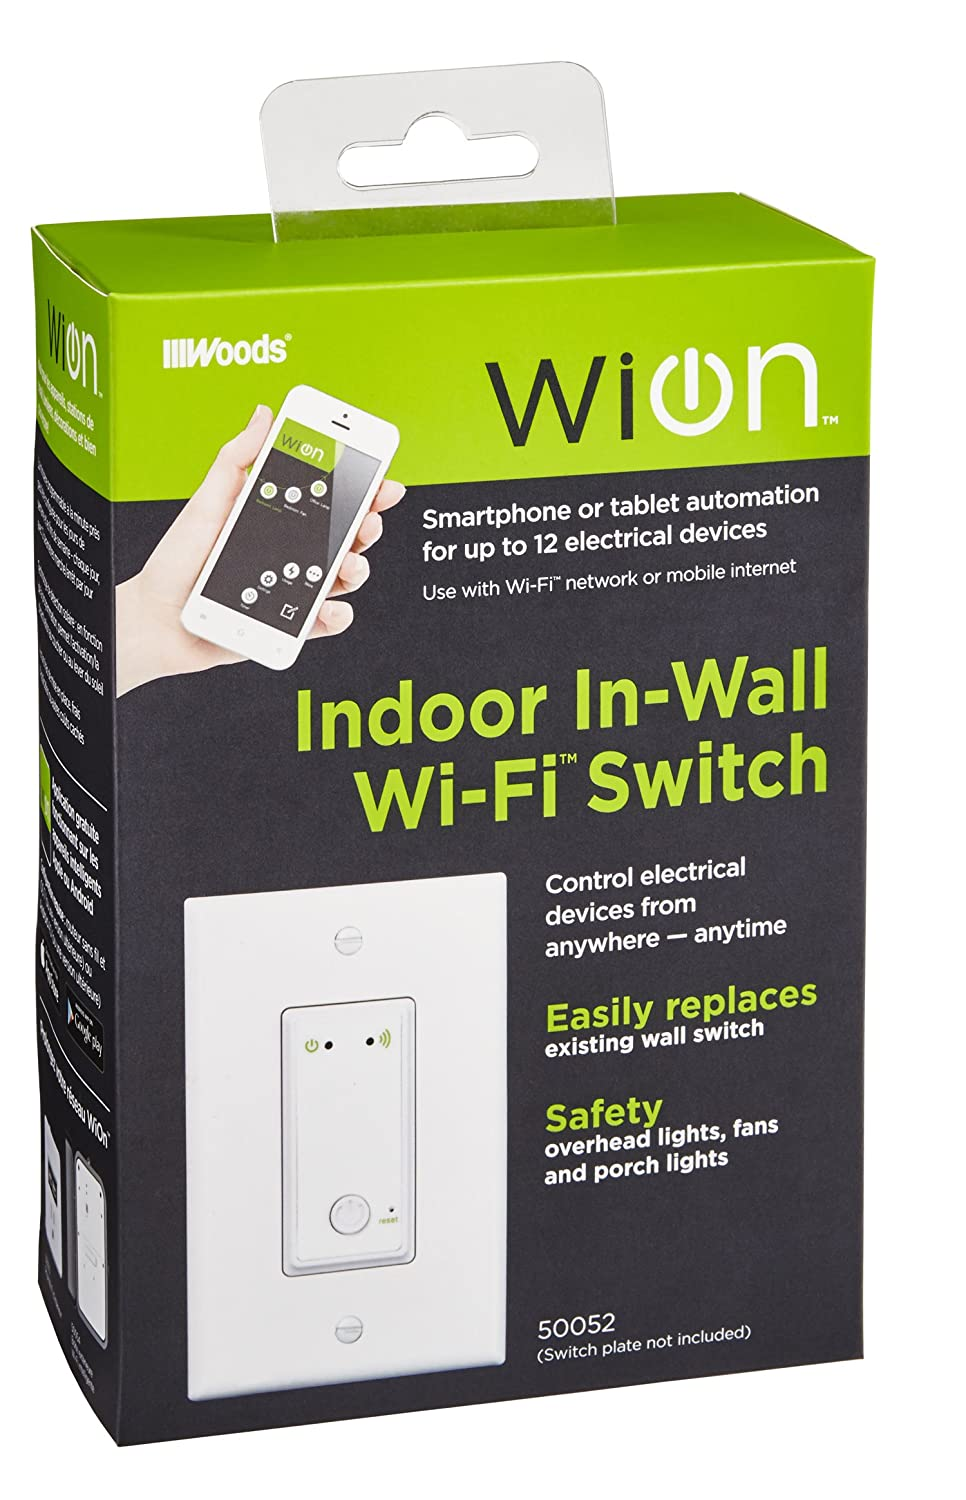 WiOn 50052 Indoor Wi-Fi In-Wall Switch - - Amazon.com